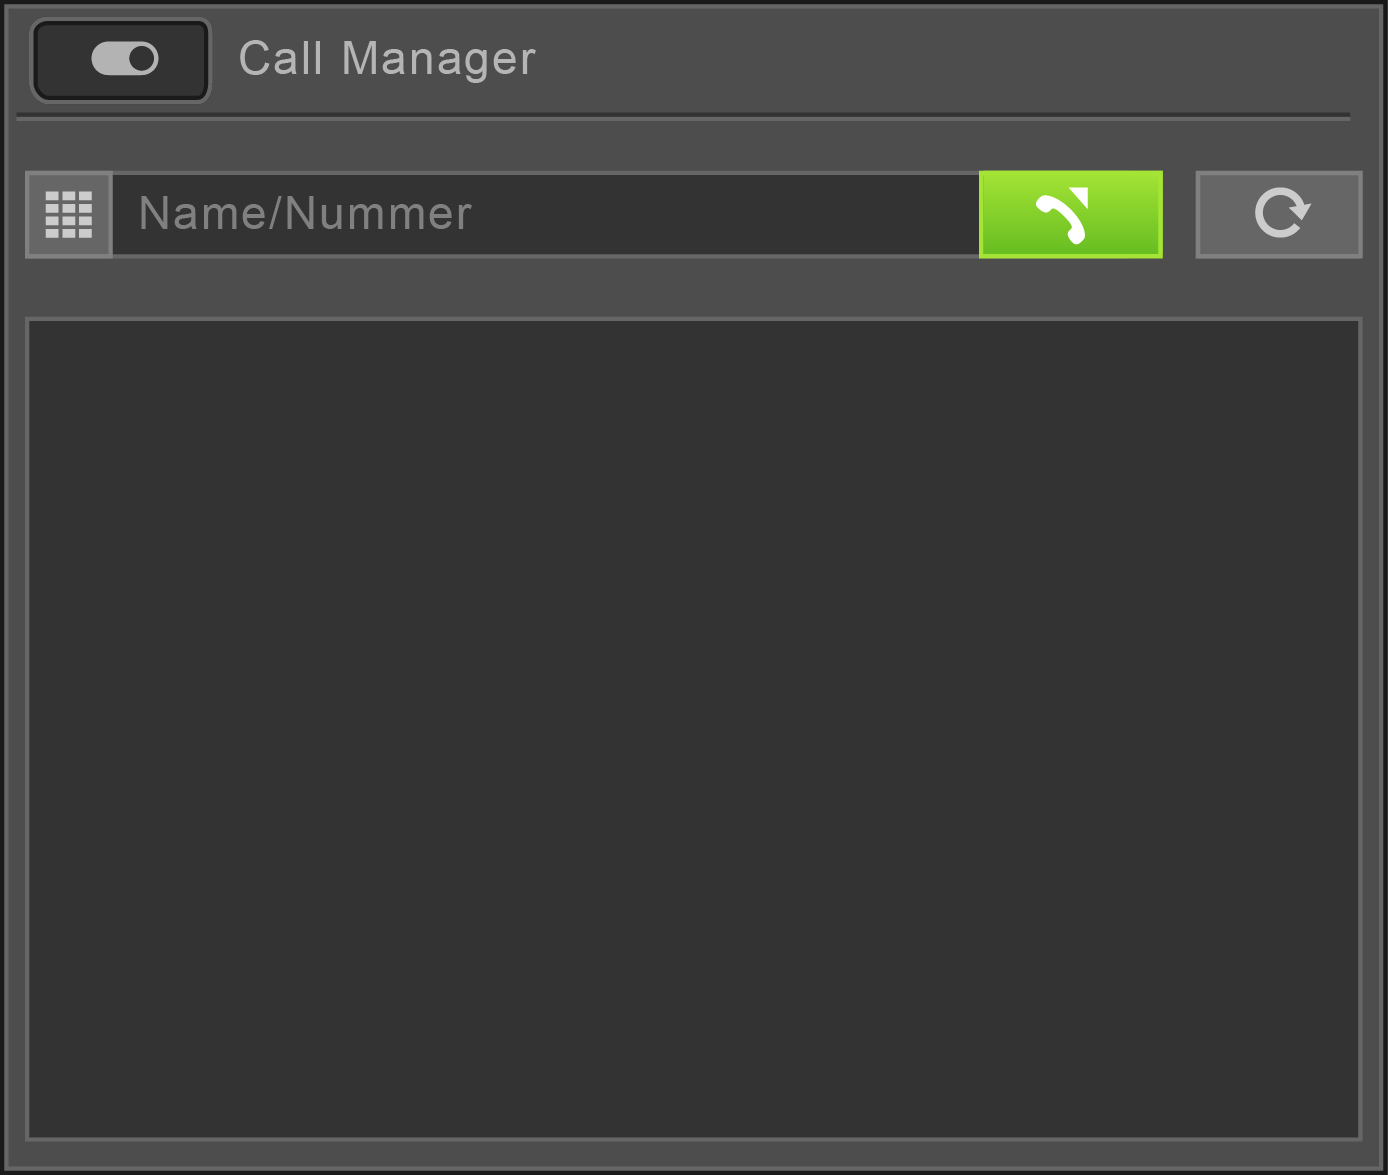 microPlan - Call Manager